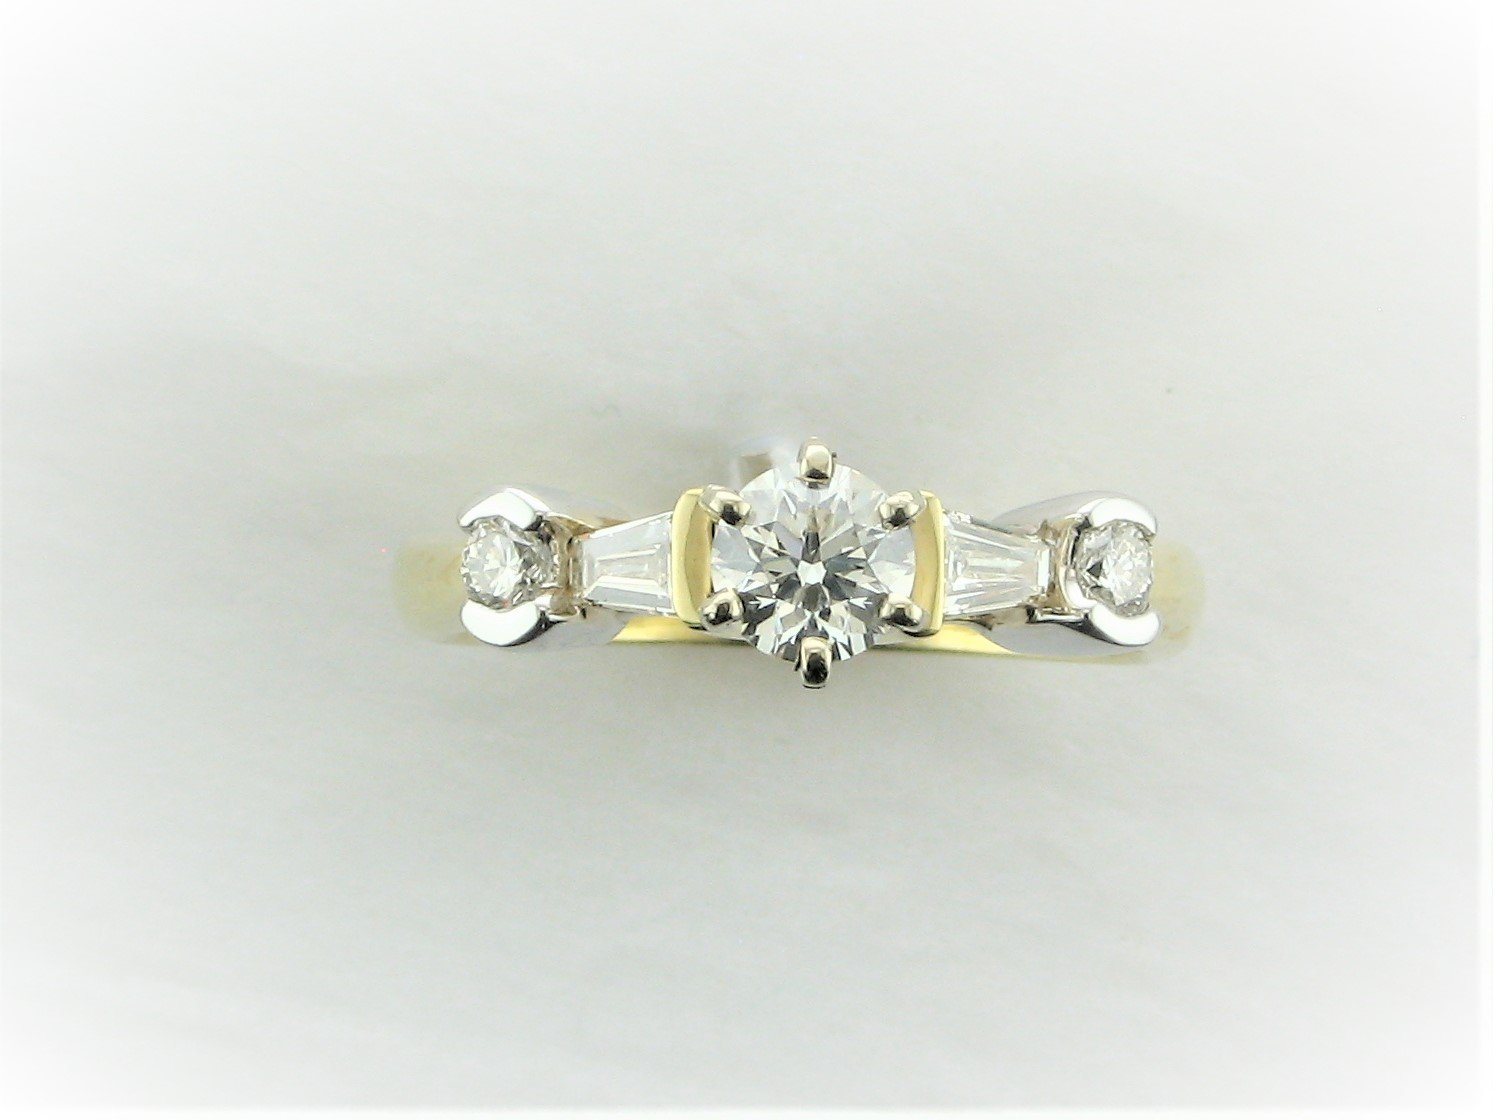 Designer Trapezoid and Round Diamond Engagement Ring Set in 18 Karat Two-Tone Yellow and White Gold